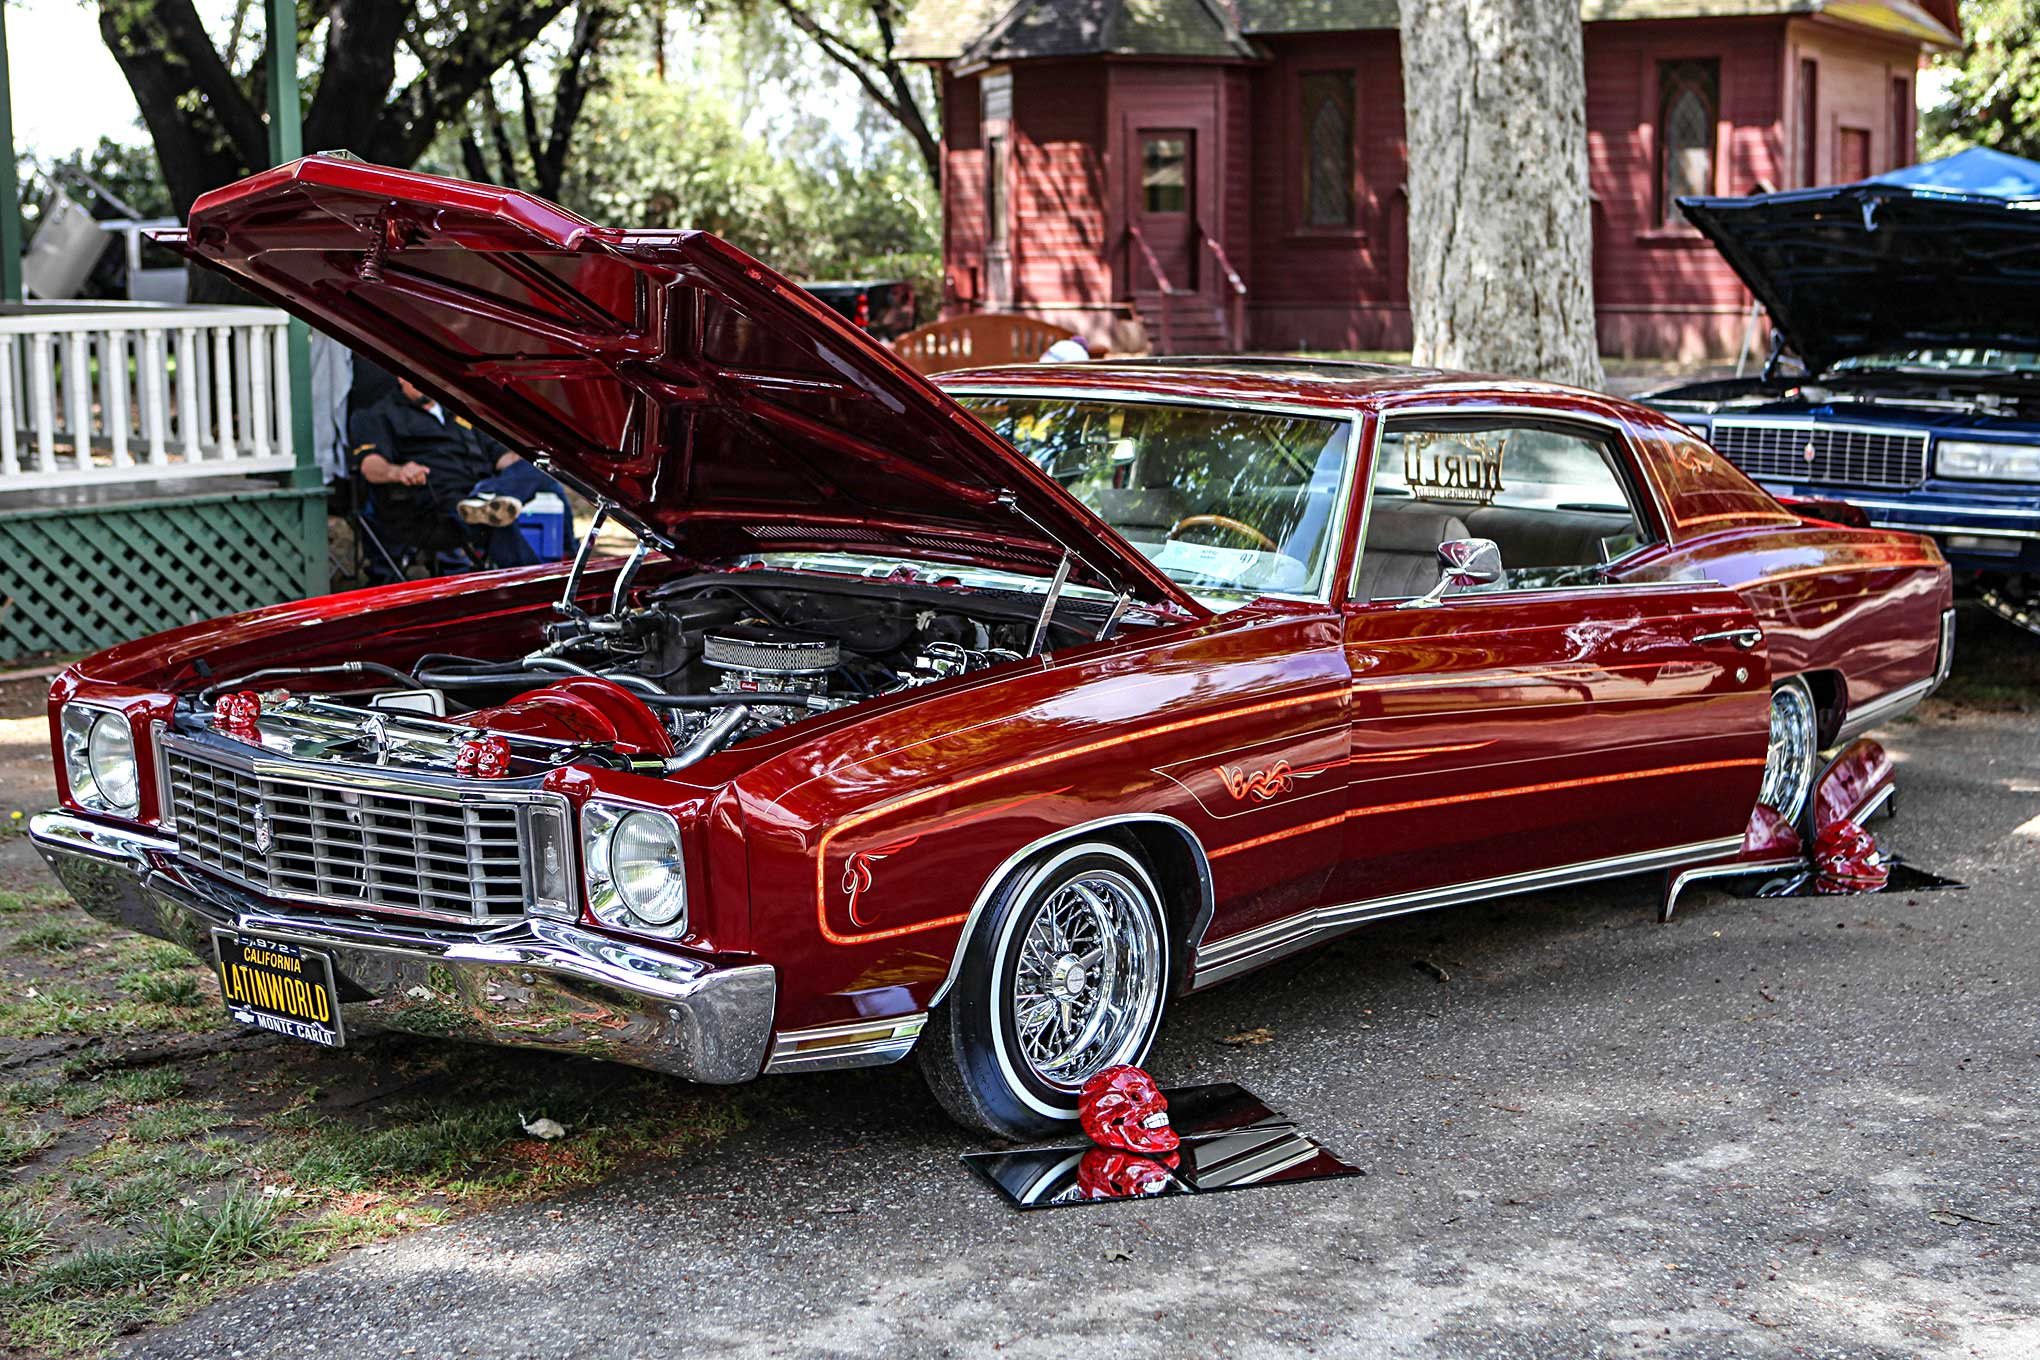 aztec image 6th annual car show monte carlo lowrider